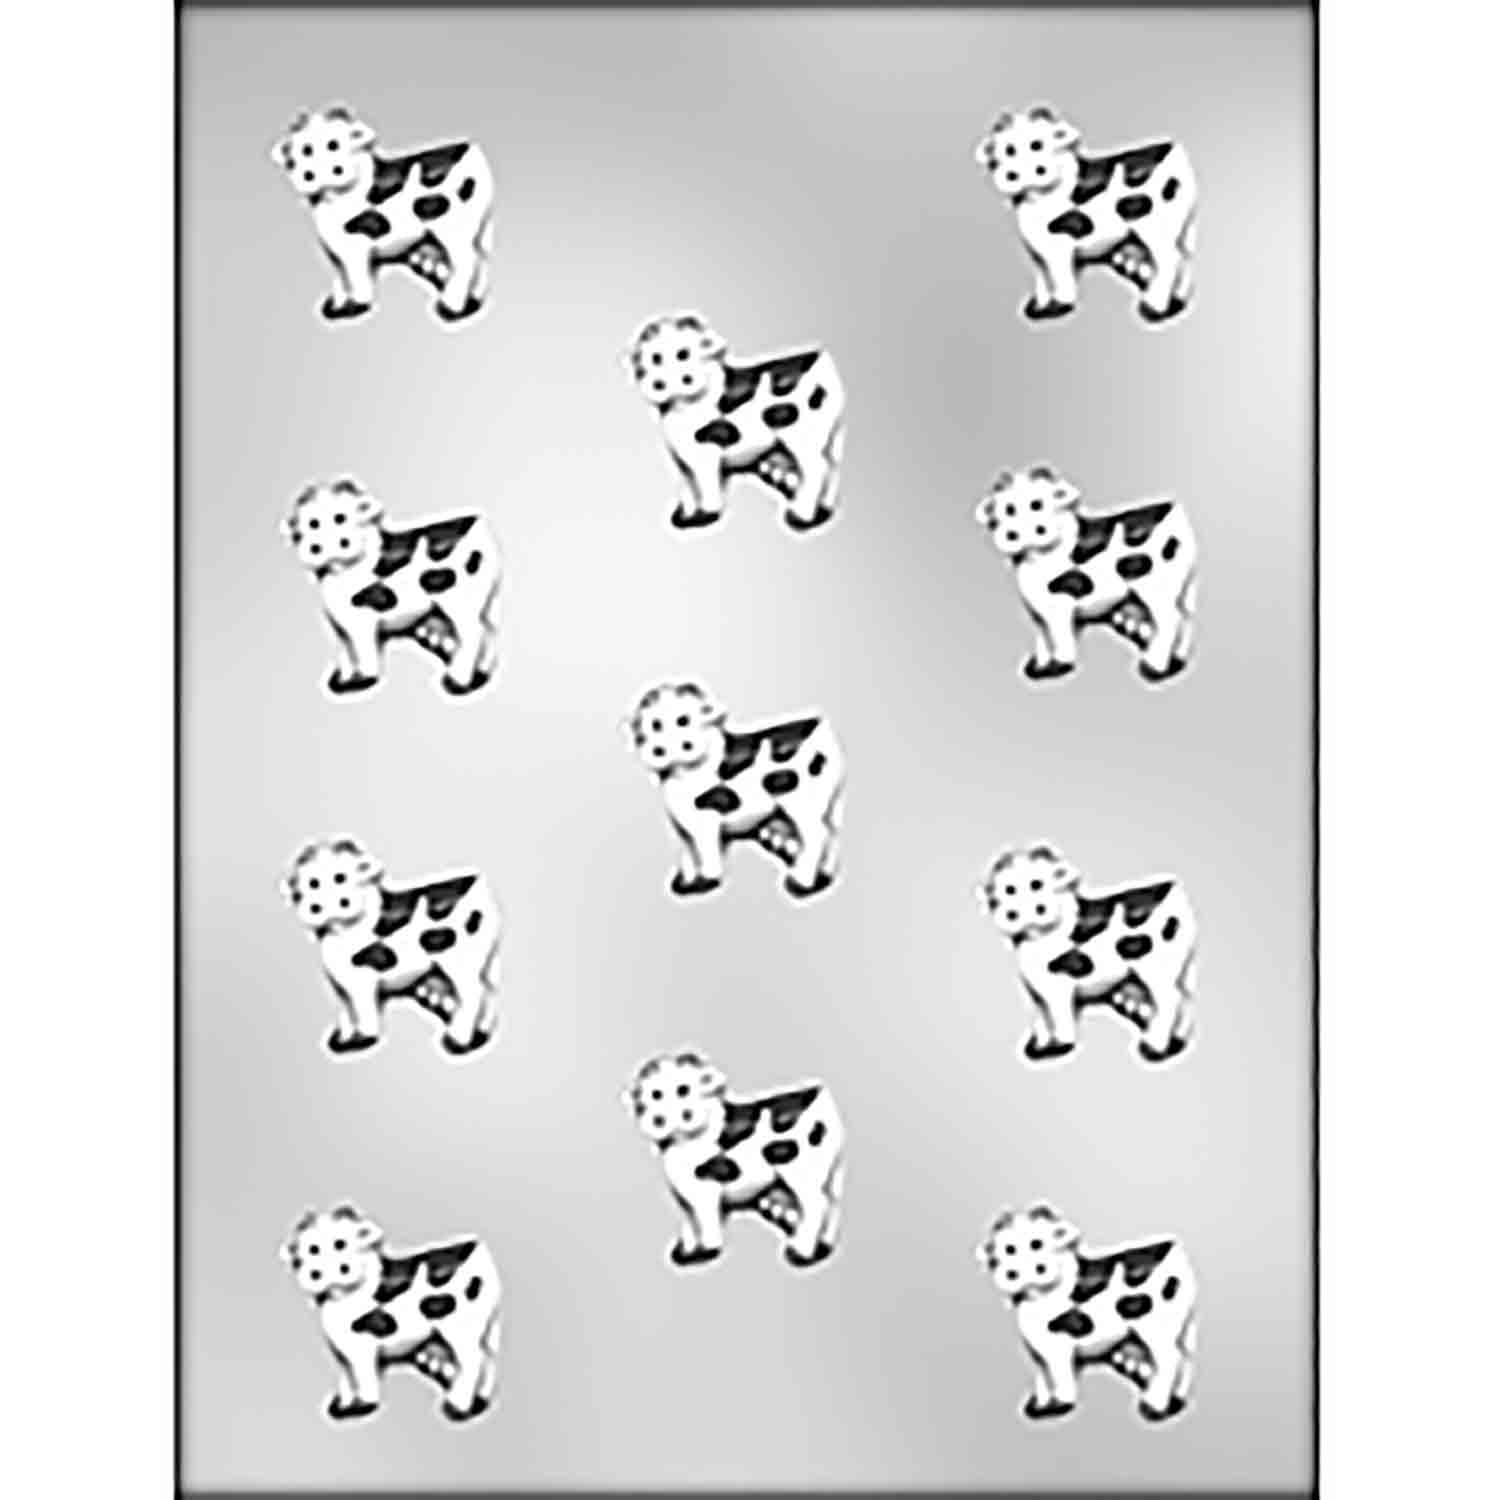 Cows Chocolate Candy Mold